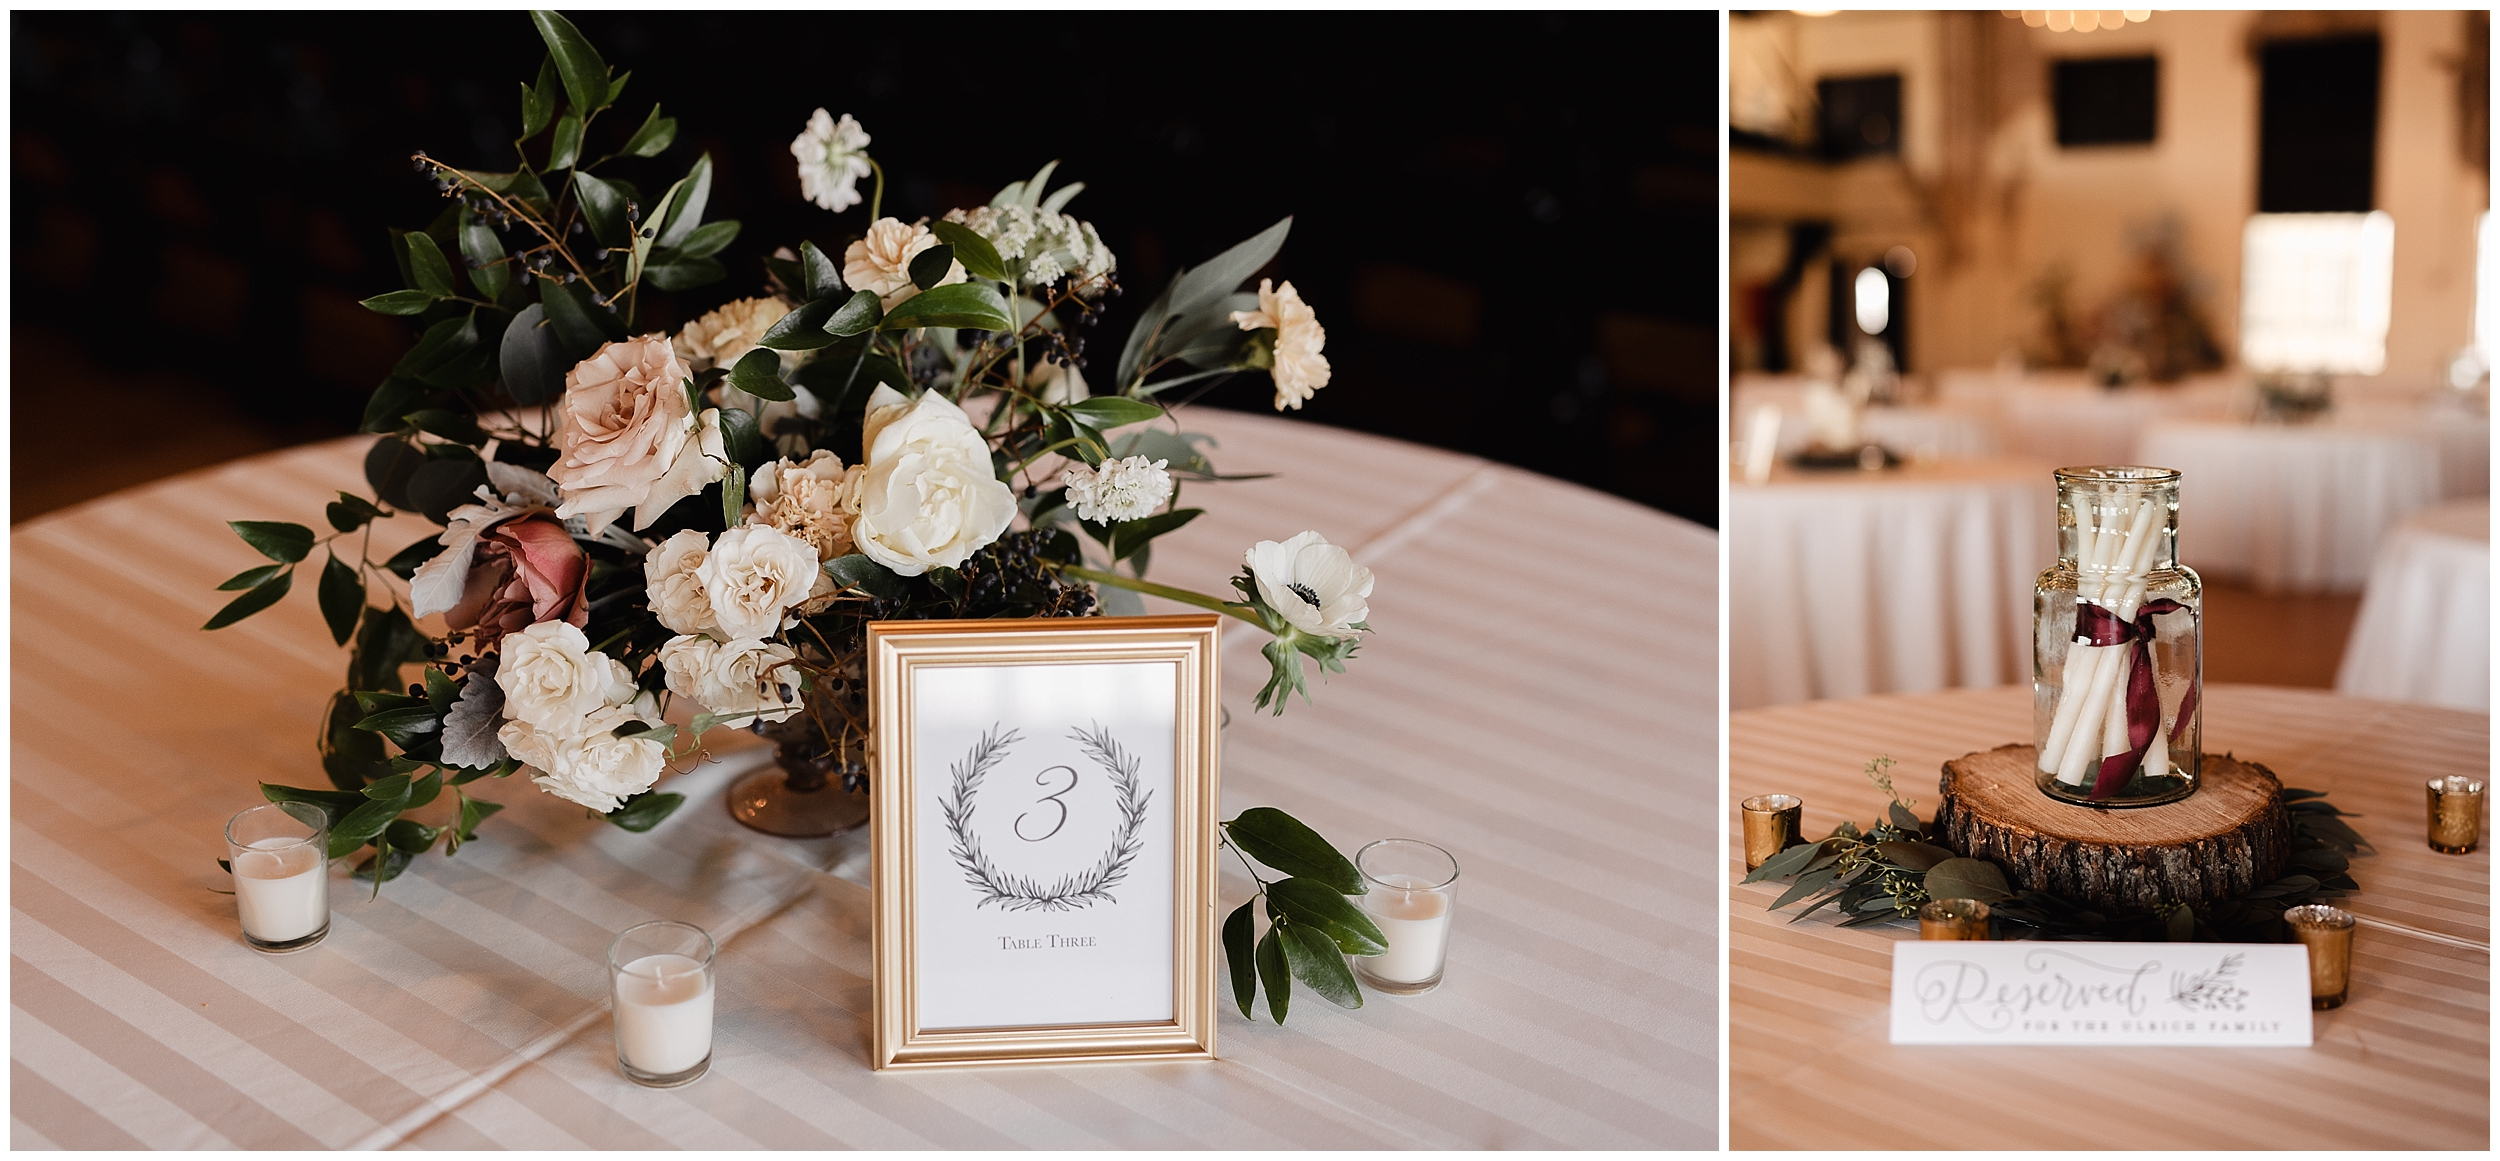 oklahoma wedding photographer florals flowers table decorations centerpieces table numbers